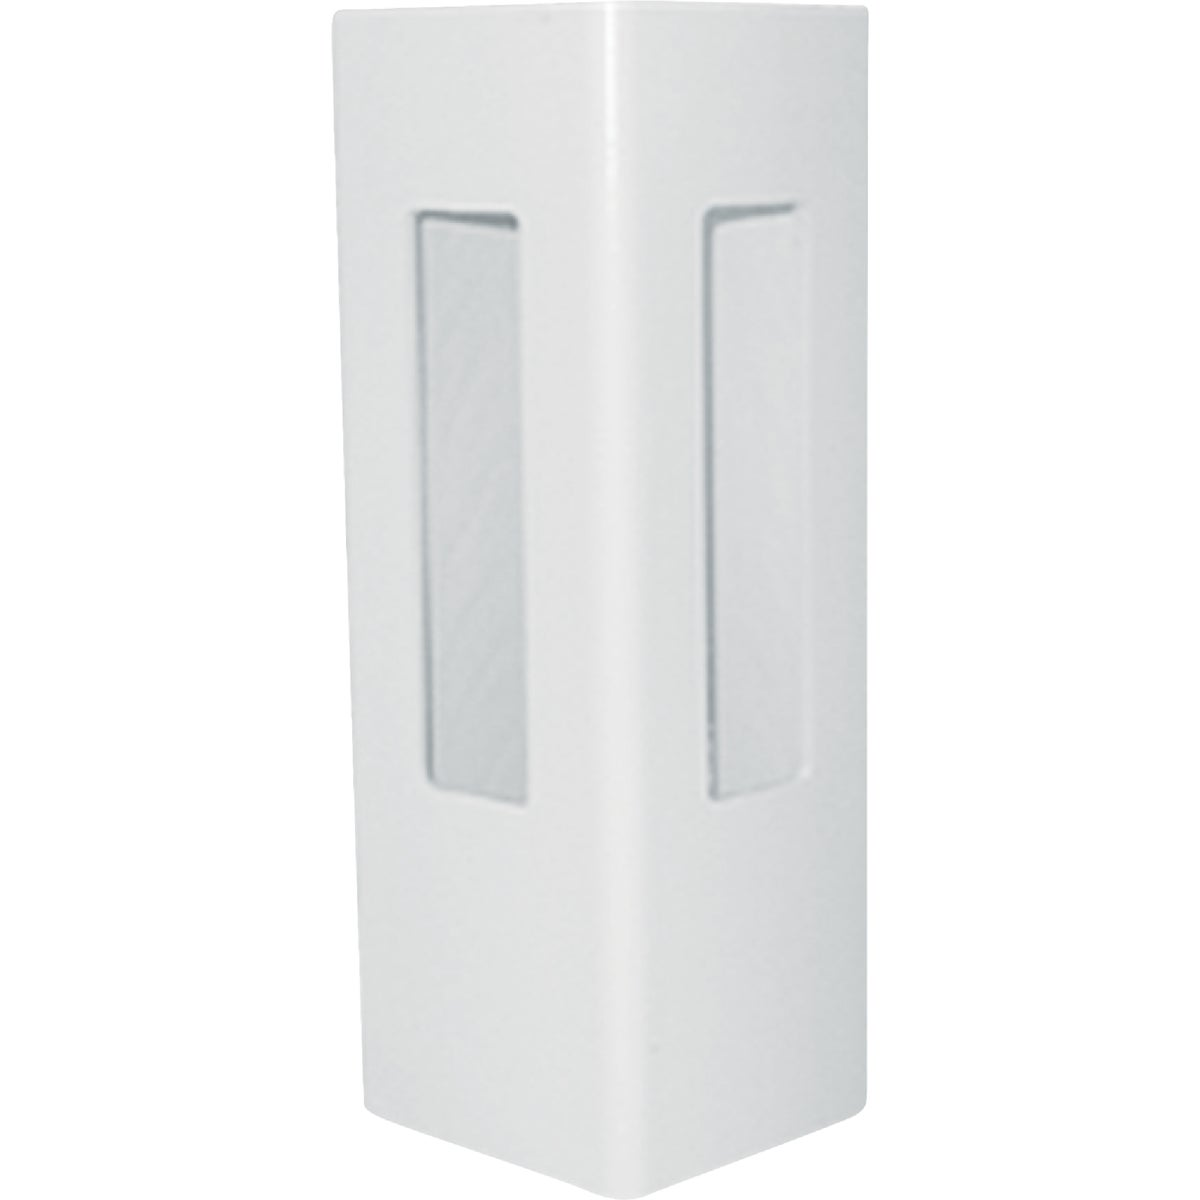 5X72 WHT 2-RAIL CRN POST - FW652C by Genova Bldg Products